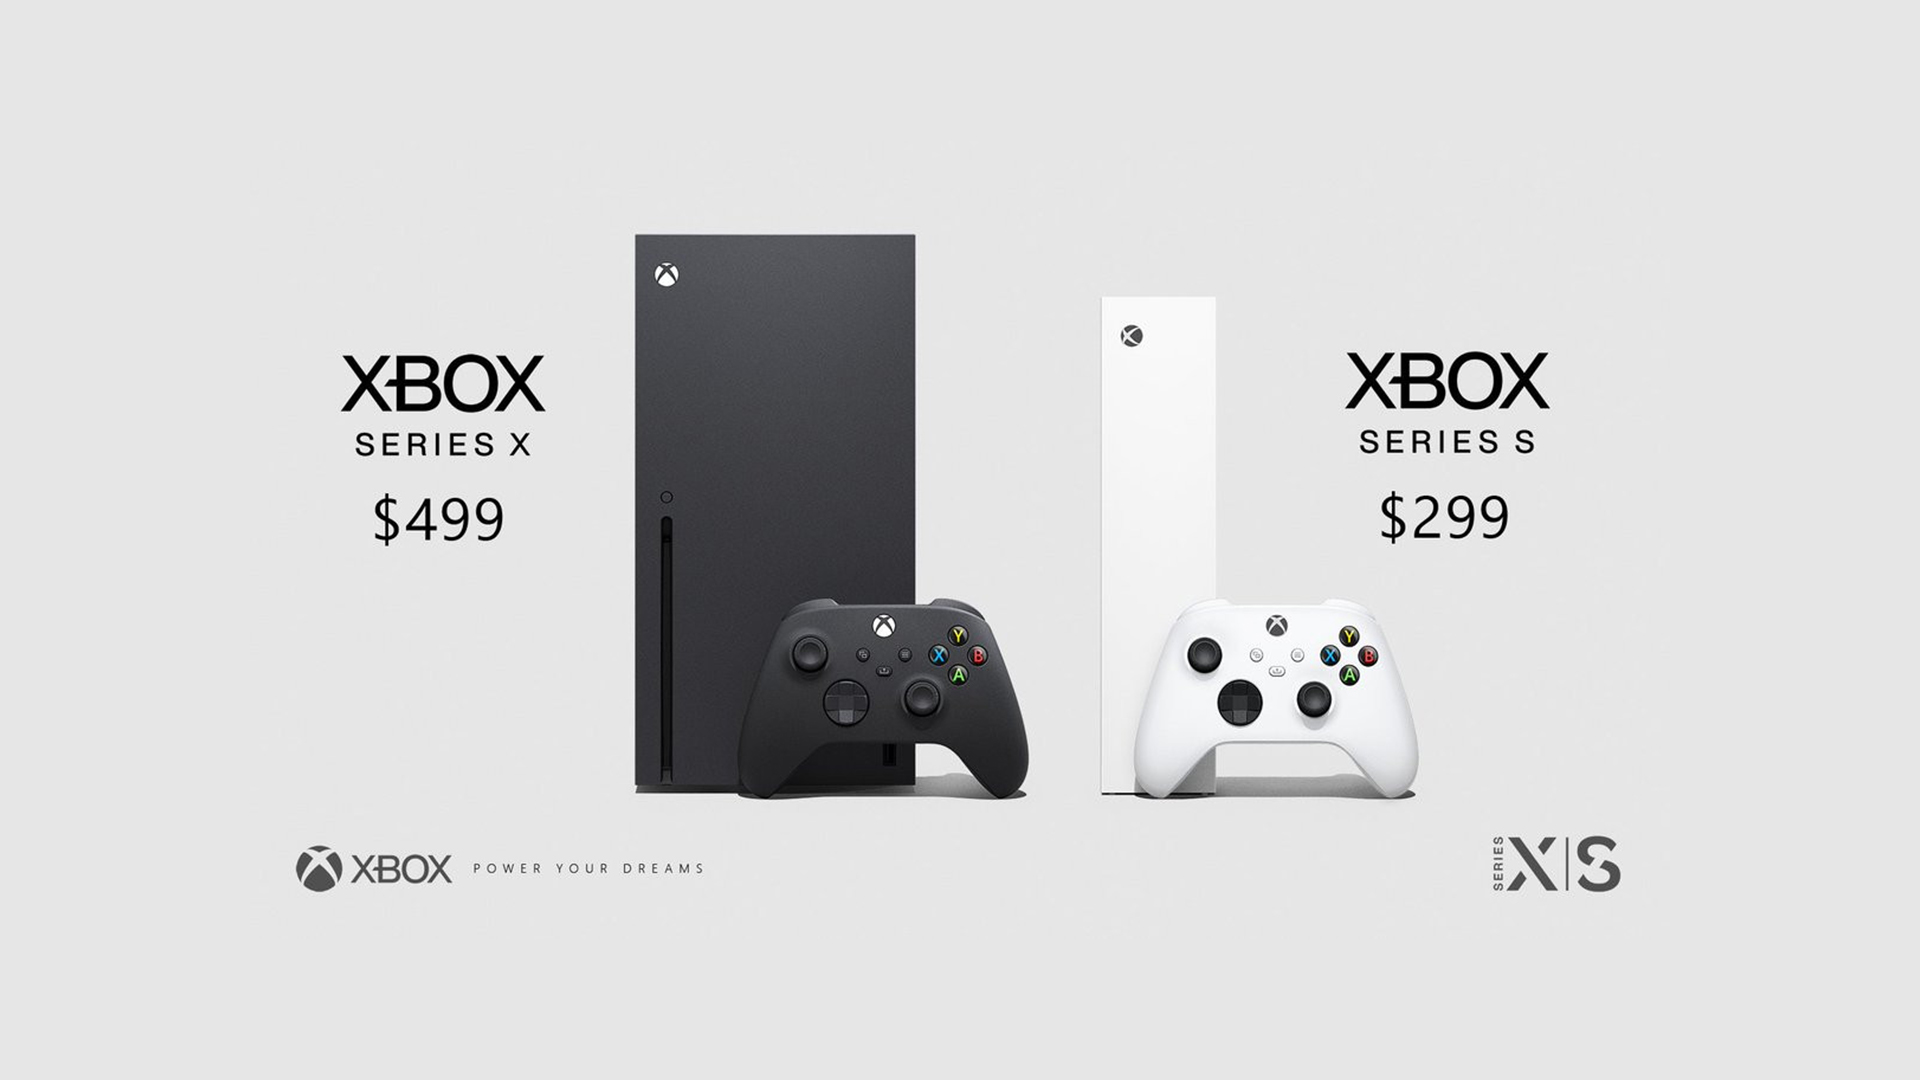 Microsoft Xbox Series X, Xbox Series S Pricing and Launch Date Confirmed: Here's Everything You Need to Know